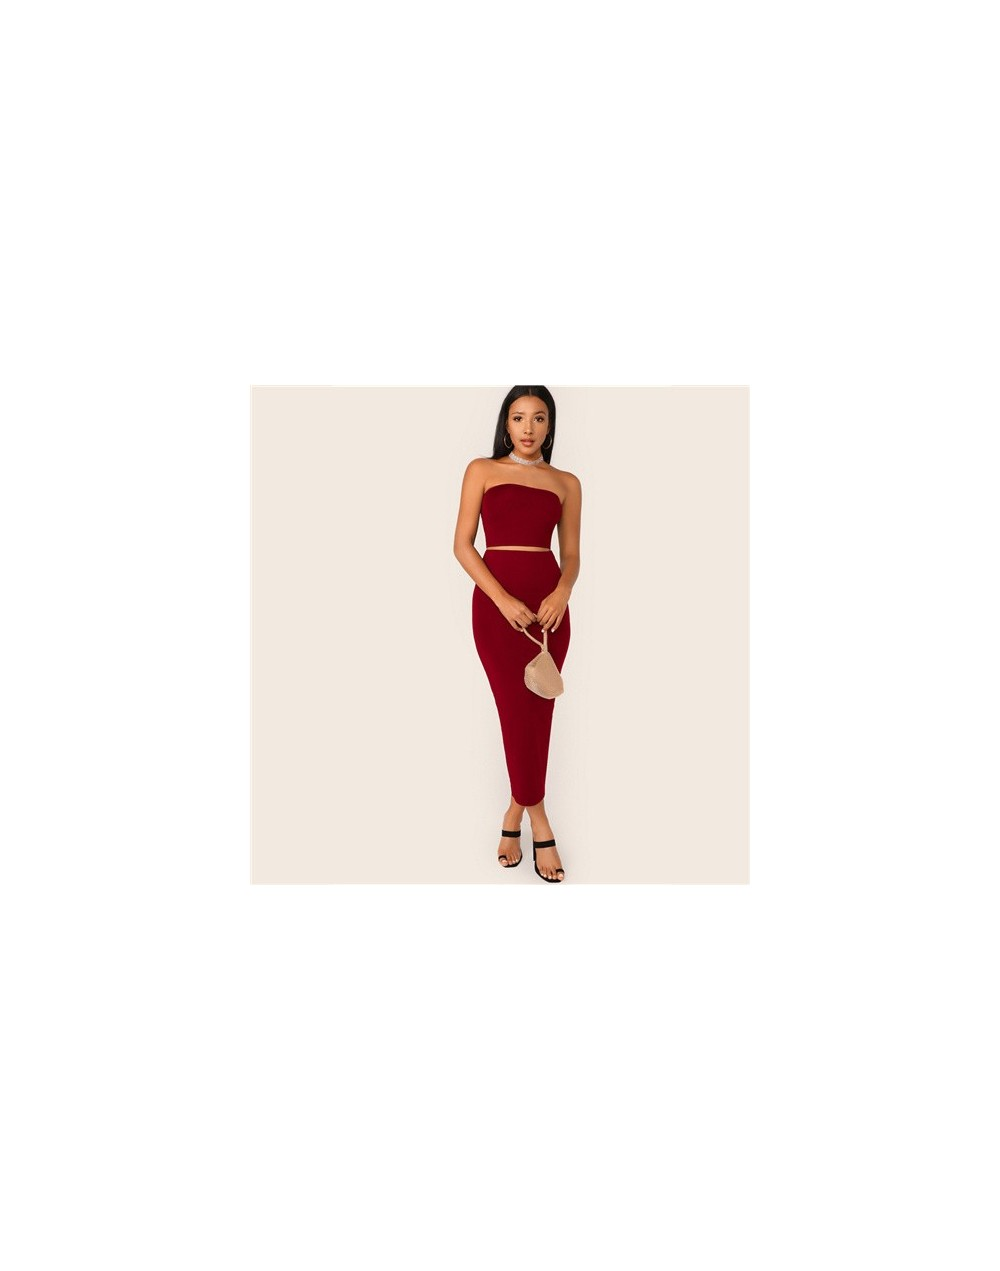 Solid Tube Crop Bandeau Top And Pencil Skirt Set Women Slim Fit Two Piece Set 2019 Summer Skinny Sexy 2 Piece Outfits - Blac...